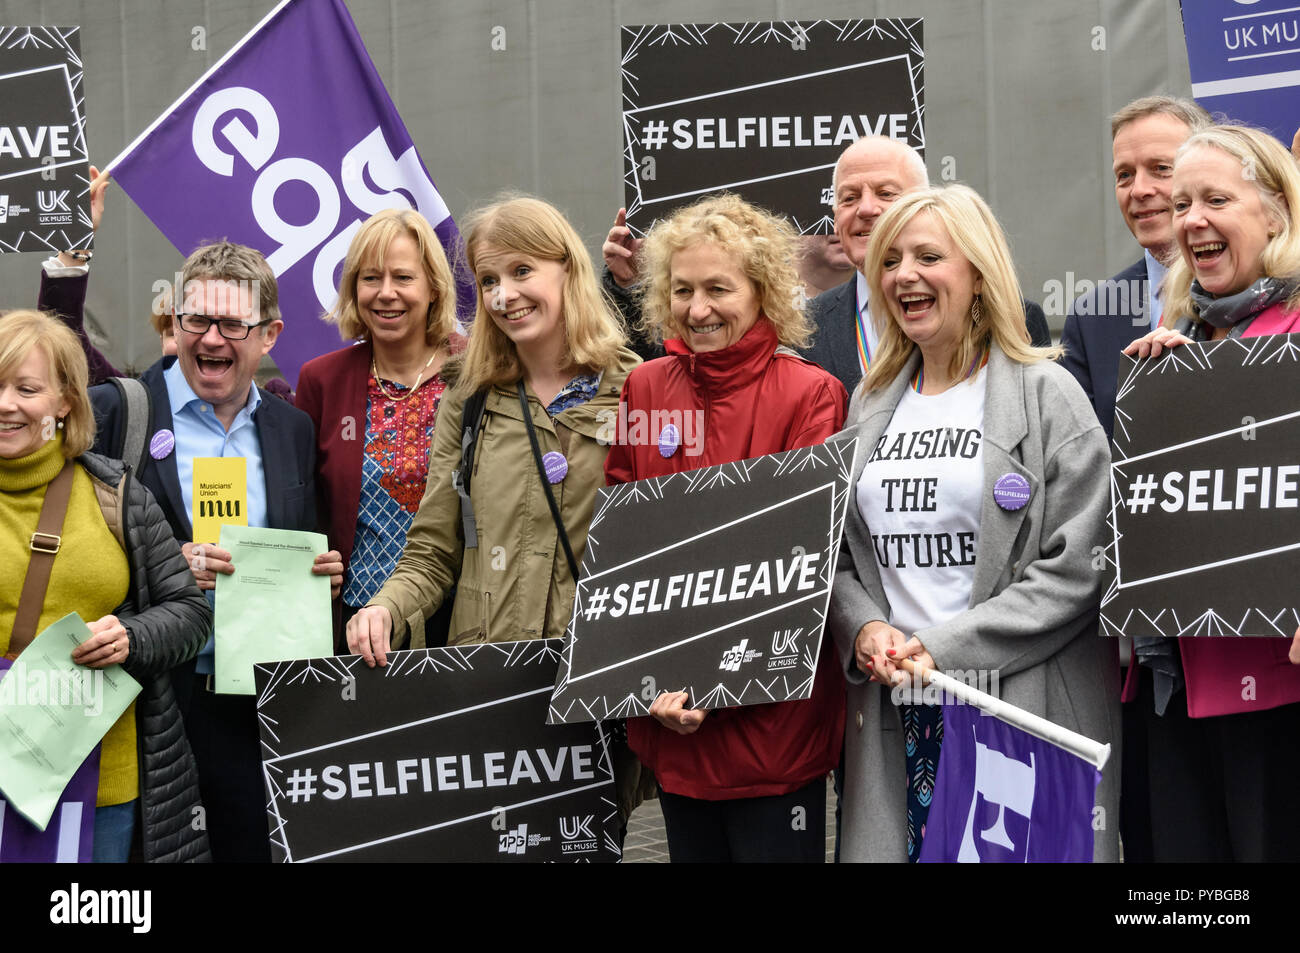 London, UK. 26th October 2018.  A photocall outside parliament marks the 2nd reading of Tracy Brabin MP's #SelfieLeave bill later which would give self-employed parents access to shared parental leave and pay was supported by members of Equity, UK Music, the Music Producers Guild and the Musicians Union. Currently women are forced to be the main carer, regardless of circumstances and fathers are denied any paid leave to look after their children, reinforcing outdated stereotypes and causing stress for thousands of families. Credit: Peter Marshall/Alamy Live News - Stock Image